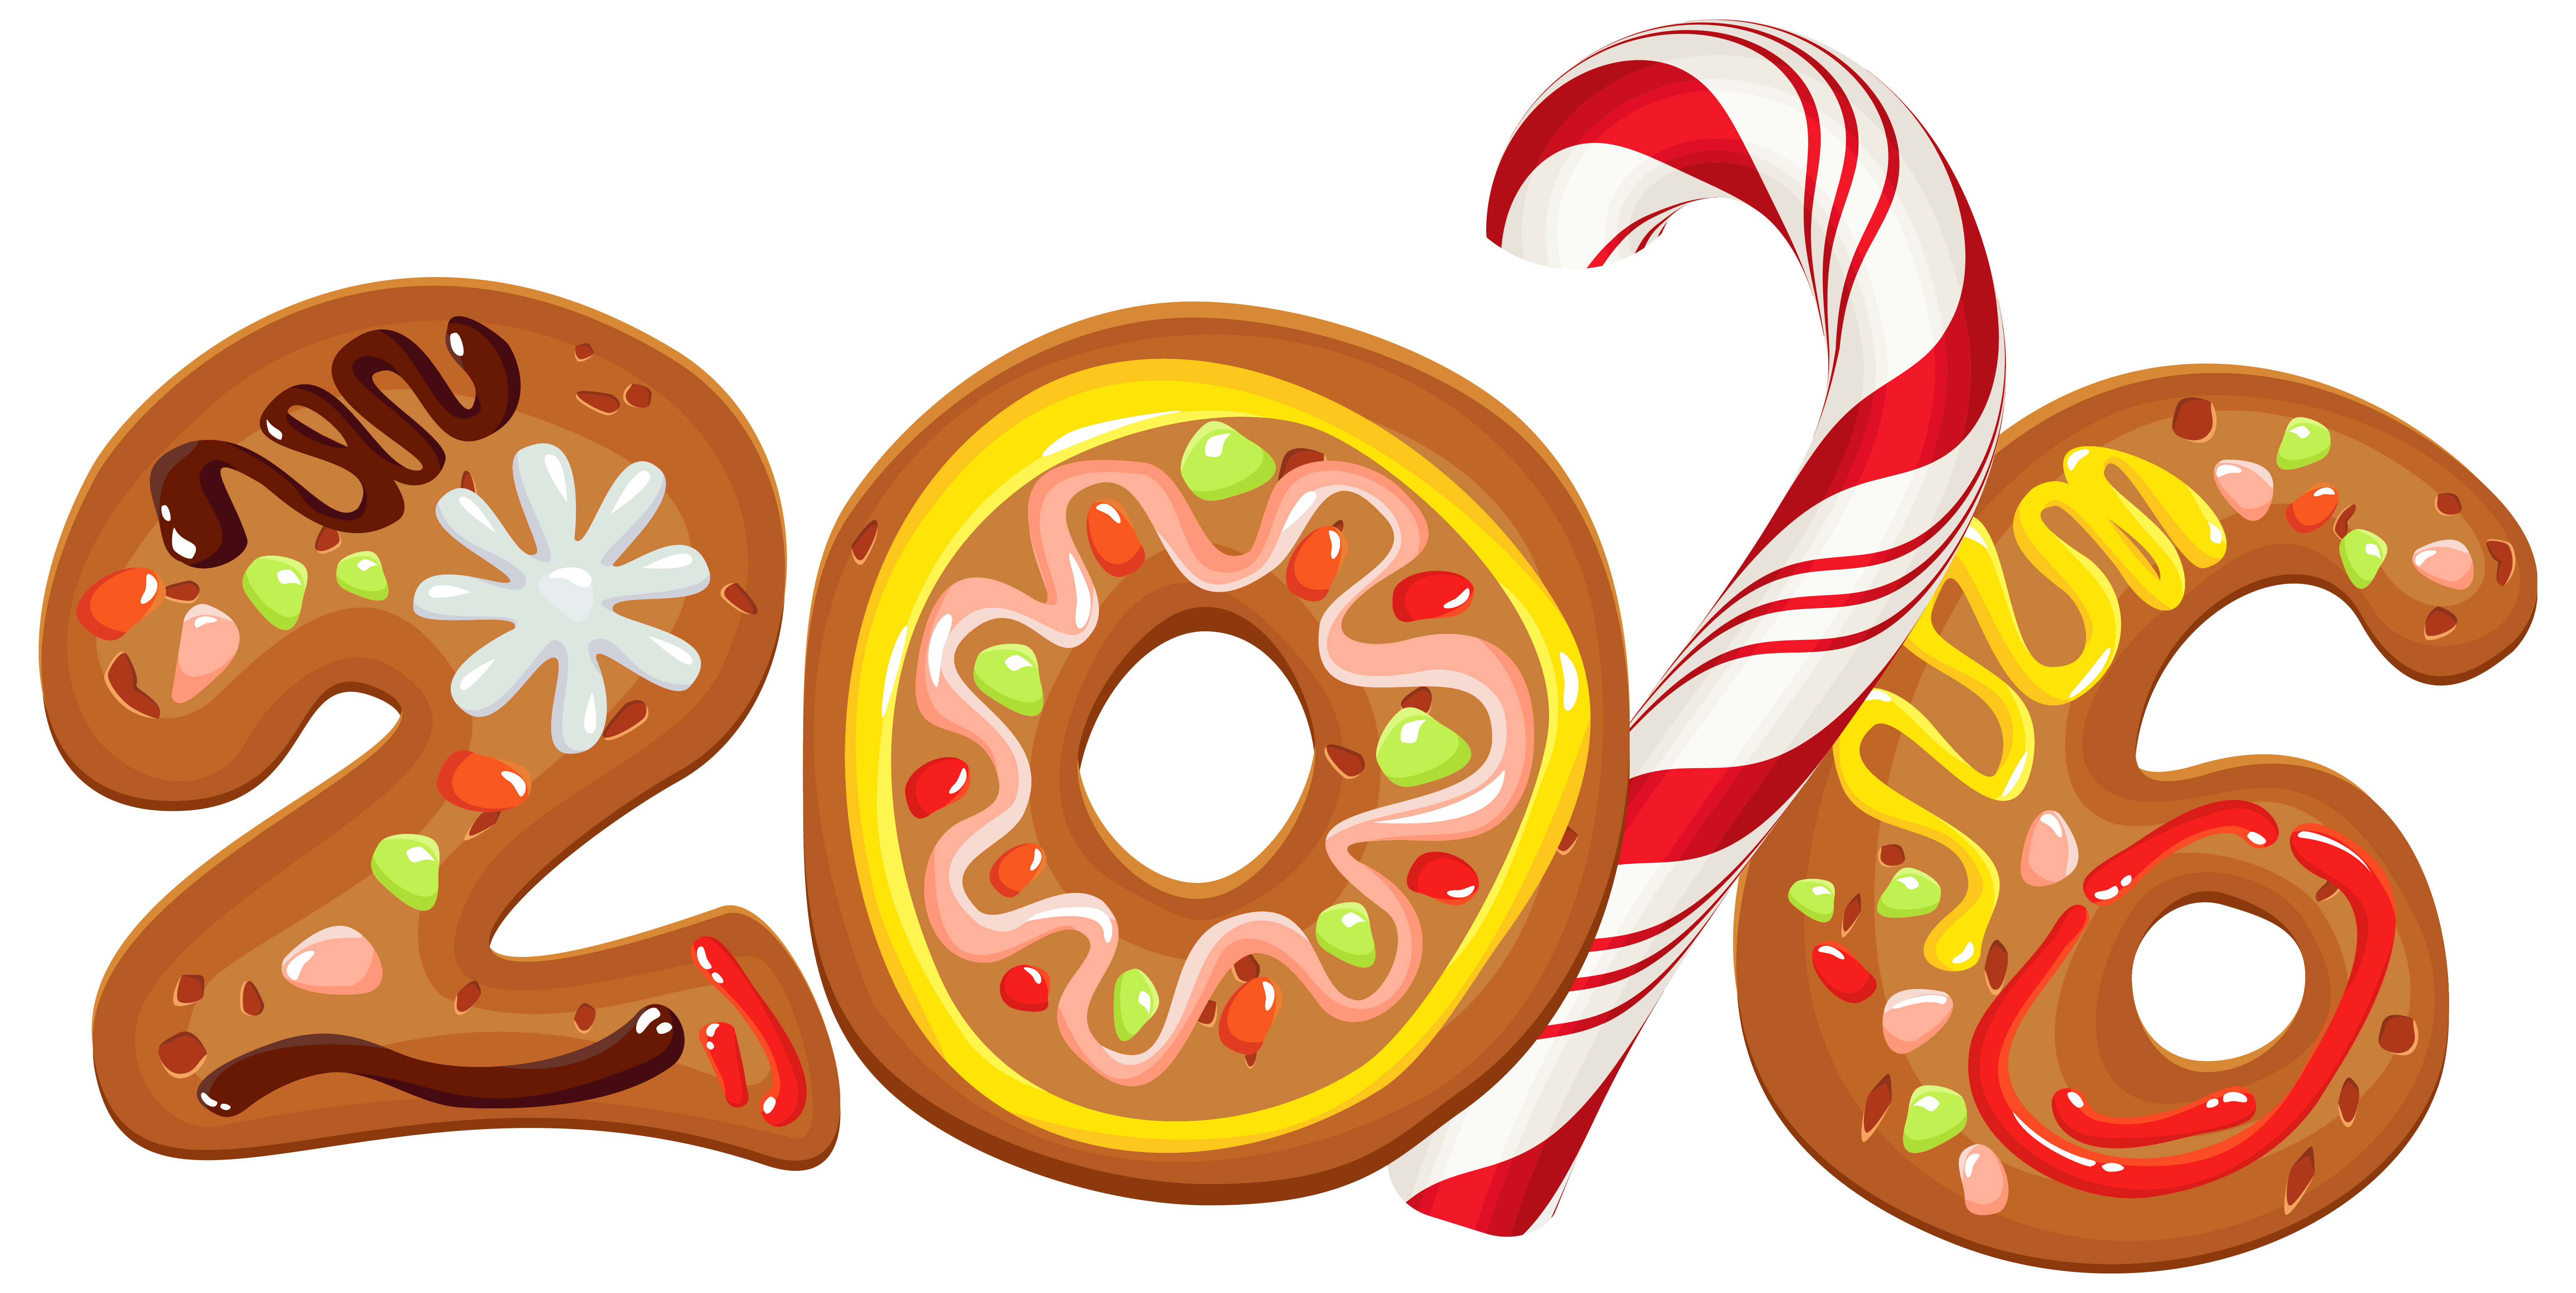 freeuse download 2016 clipart.  cookie style png